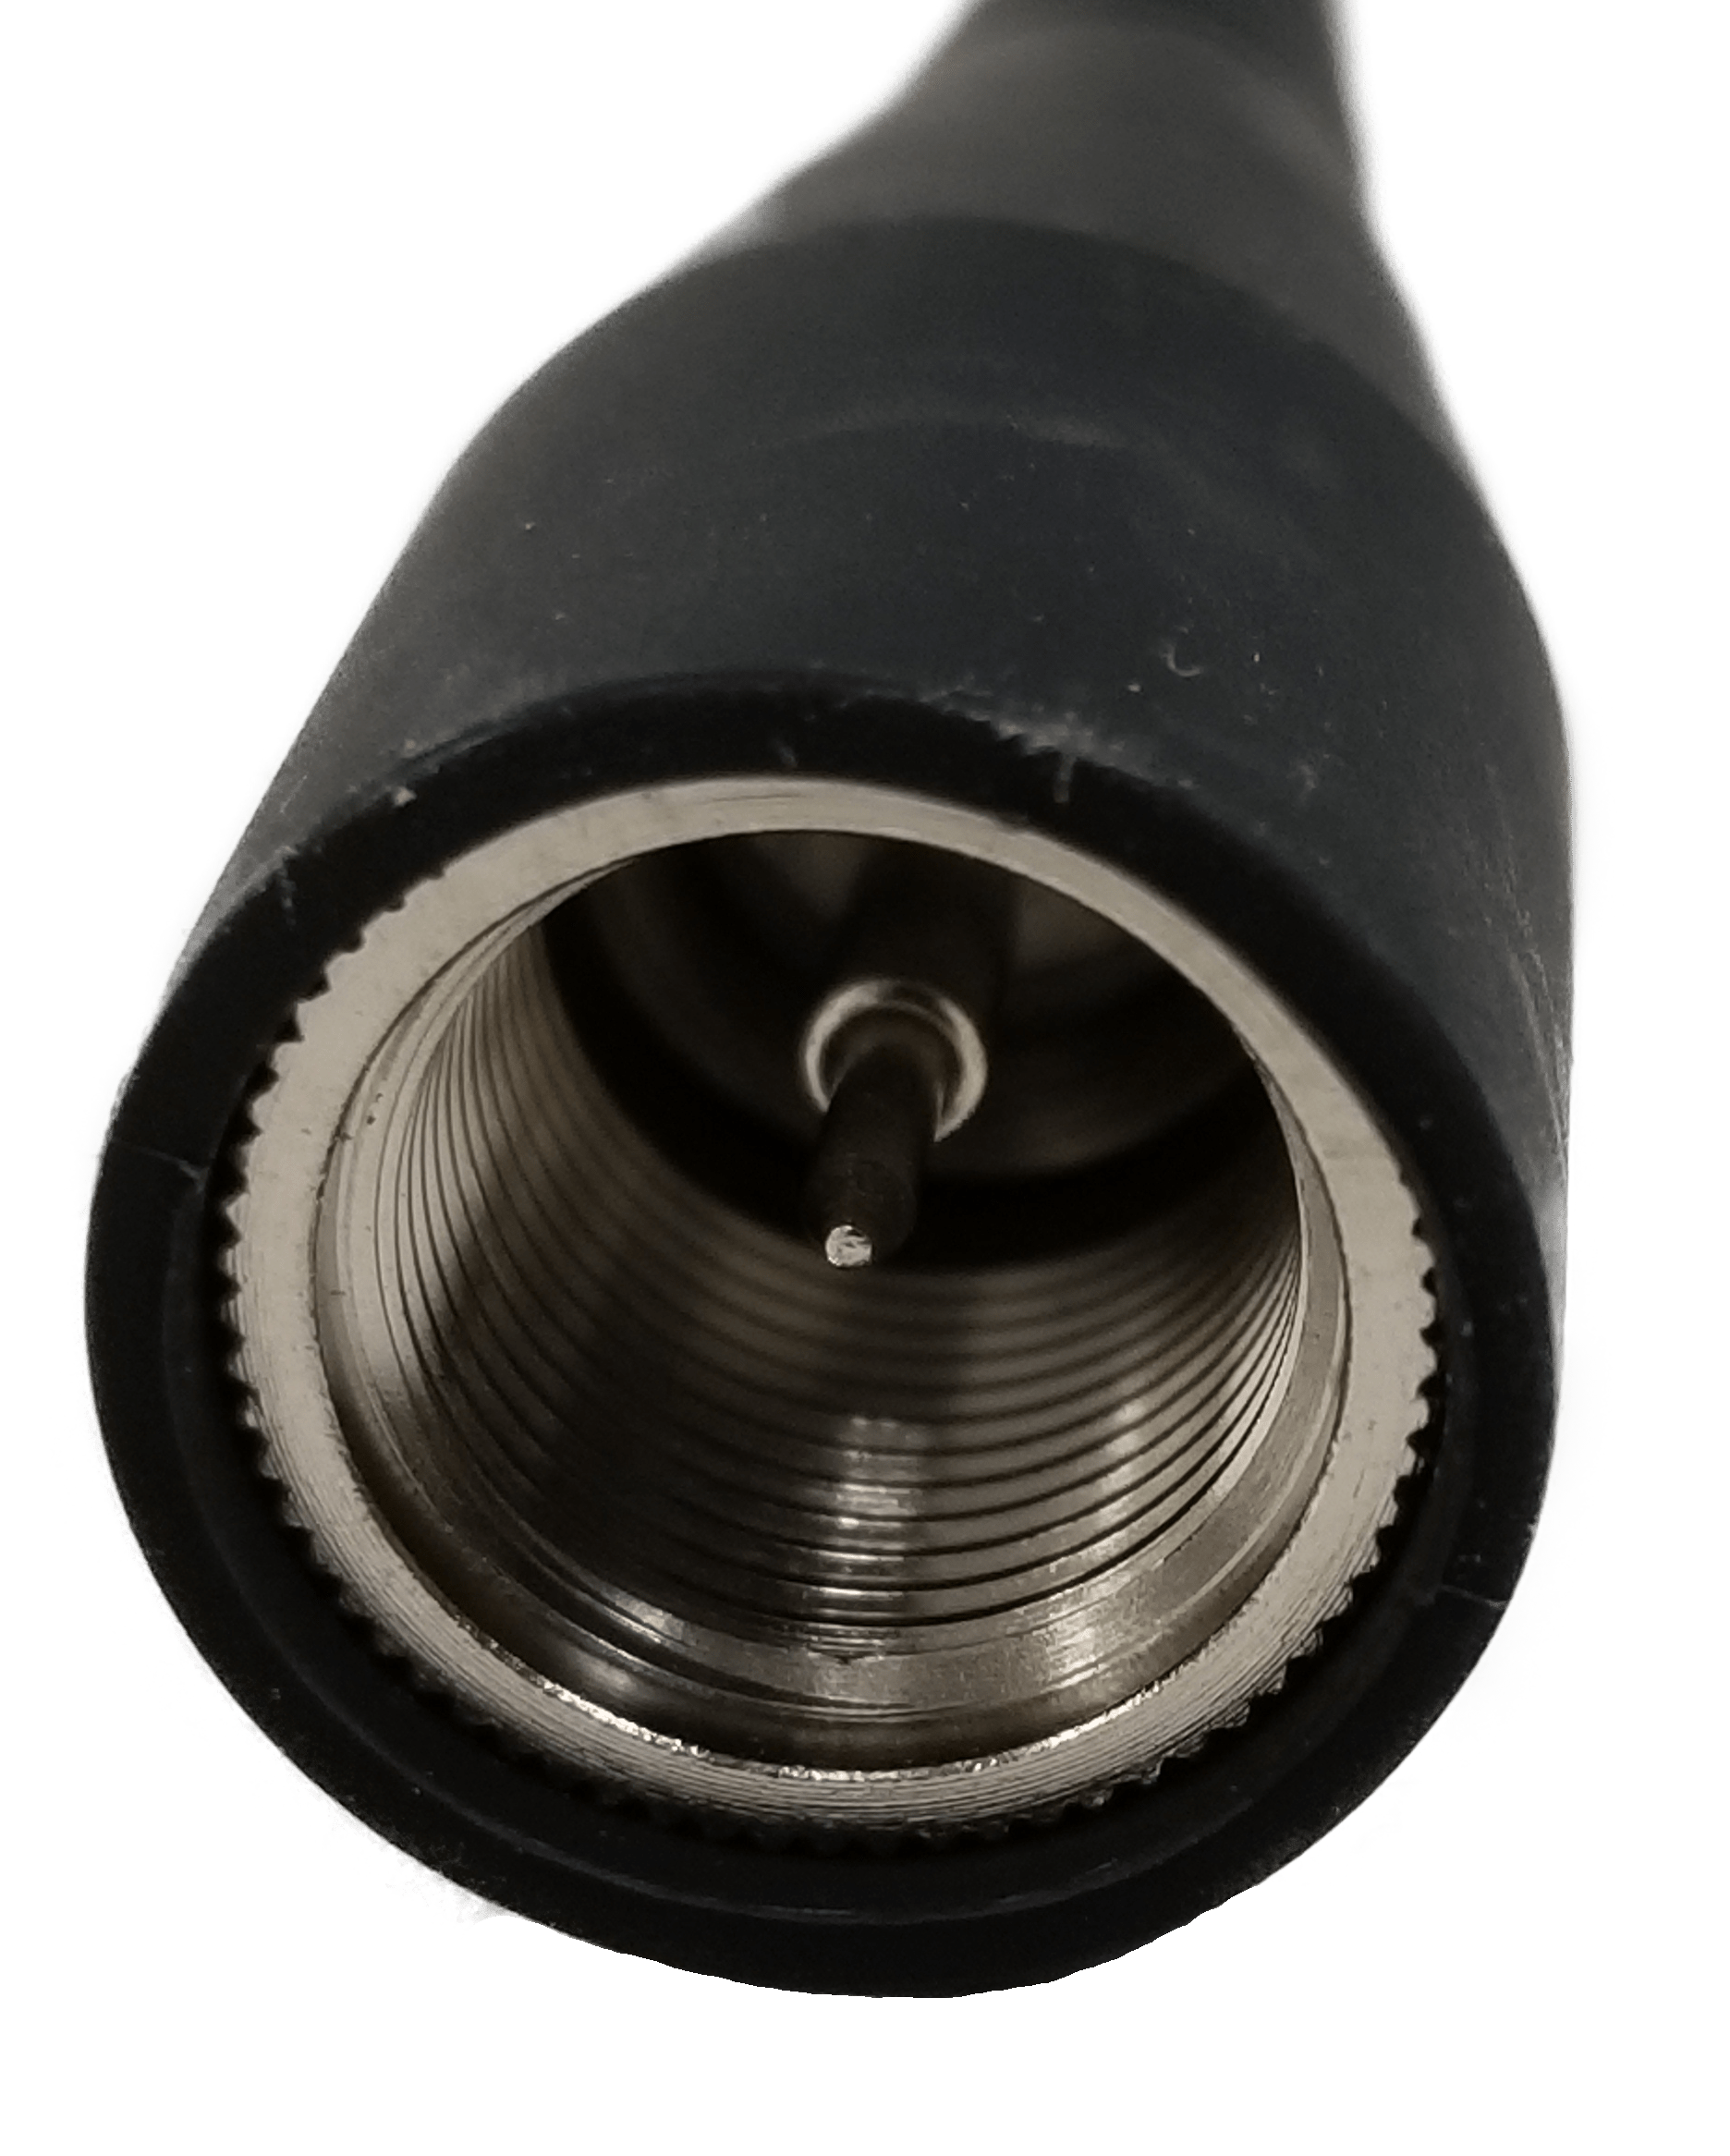 70A272 - Antenna Specialists 450-470 MHz Uhf Antenna (Tnc Male)